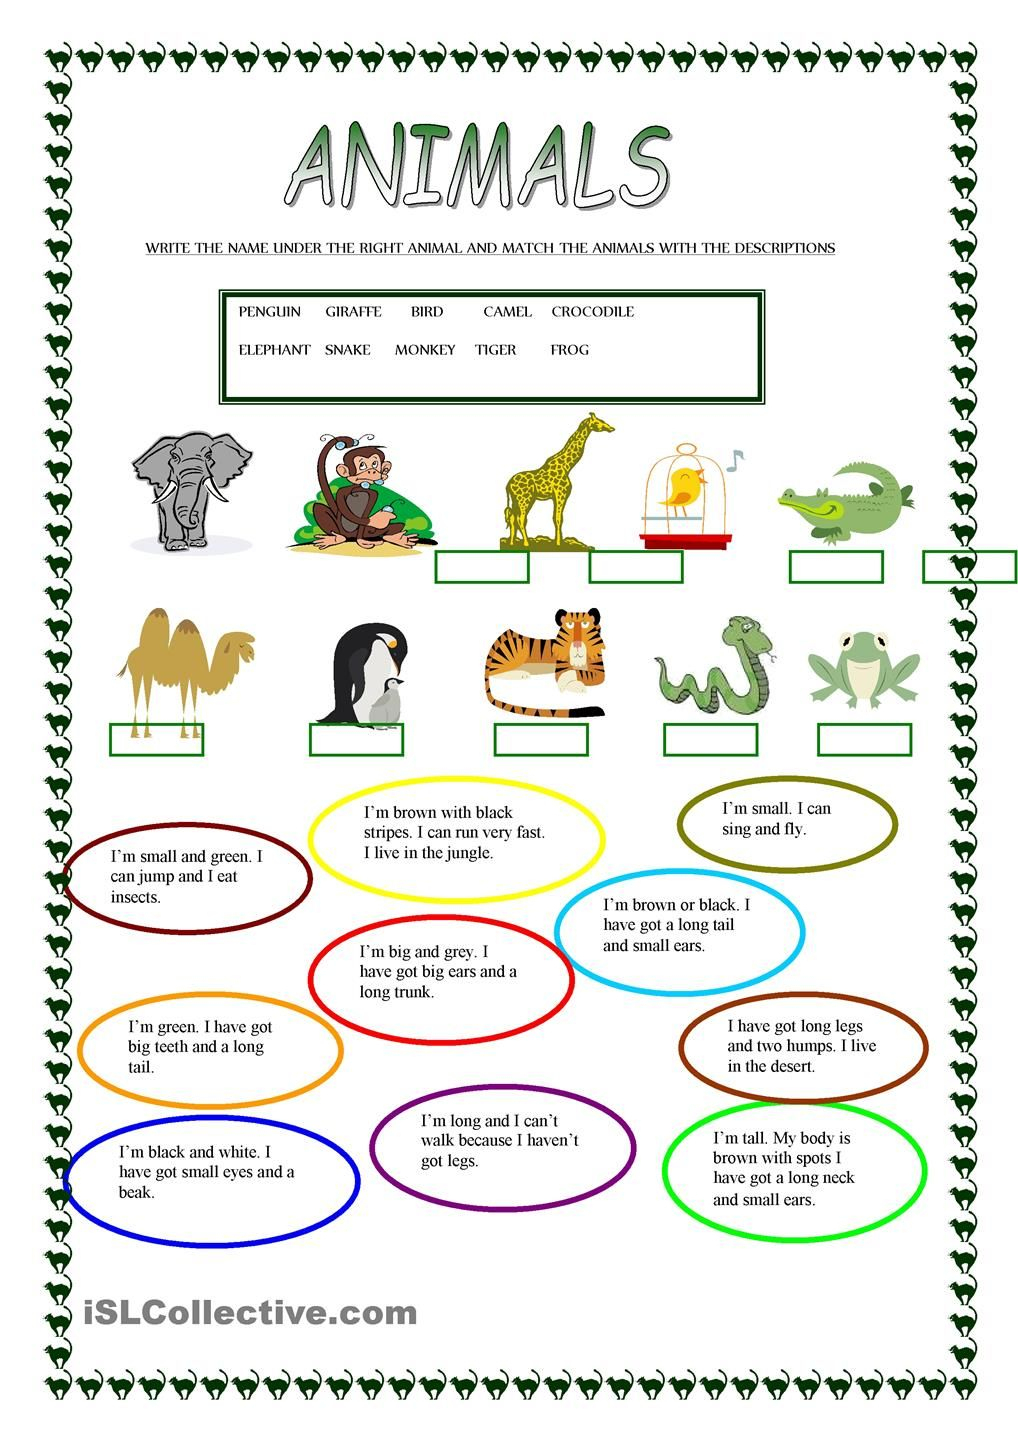 Animals | Free Esl Worksheets | Teachers Resources | Animal | Los Animales Printable Worksheets